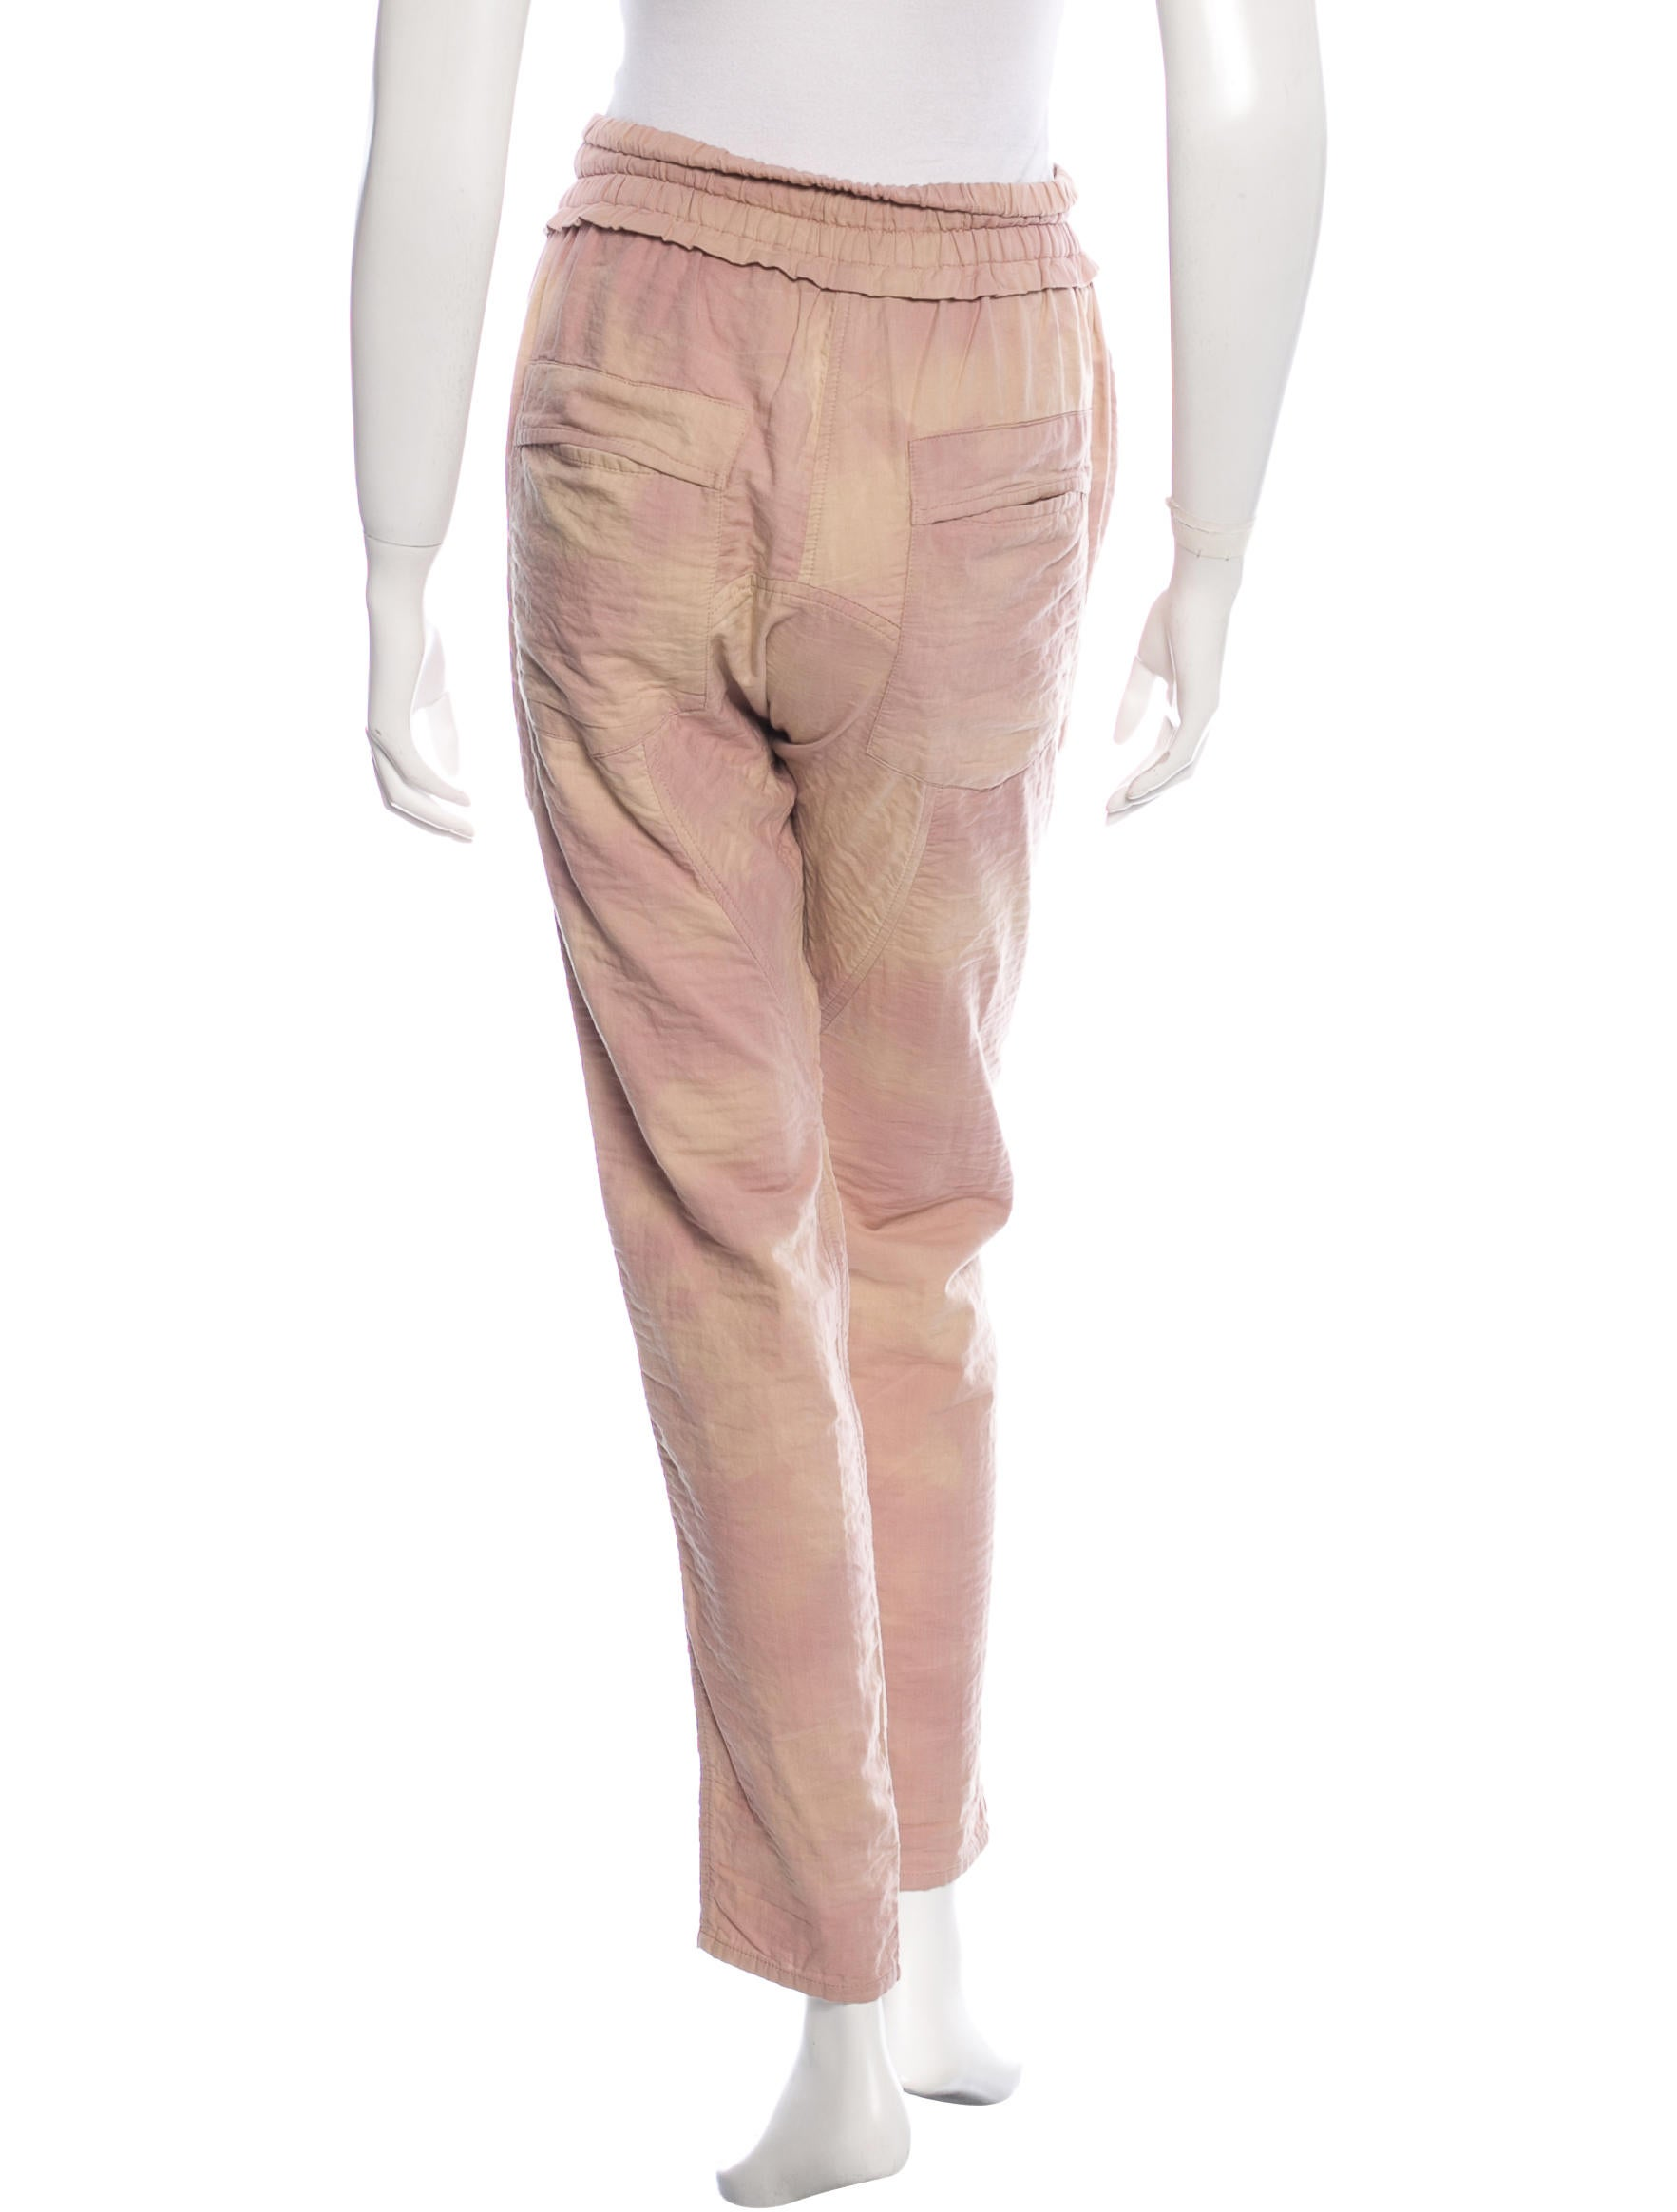 Shop our range of Women's Skinny Leg Pants online at David Jones. Shop from your favourite brands and the latest designs. Free & fast delivery available.